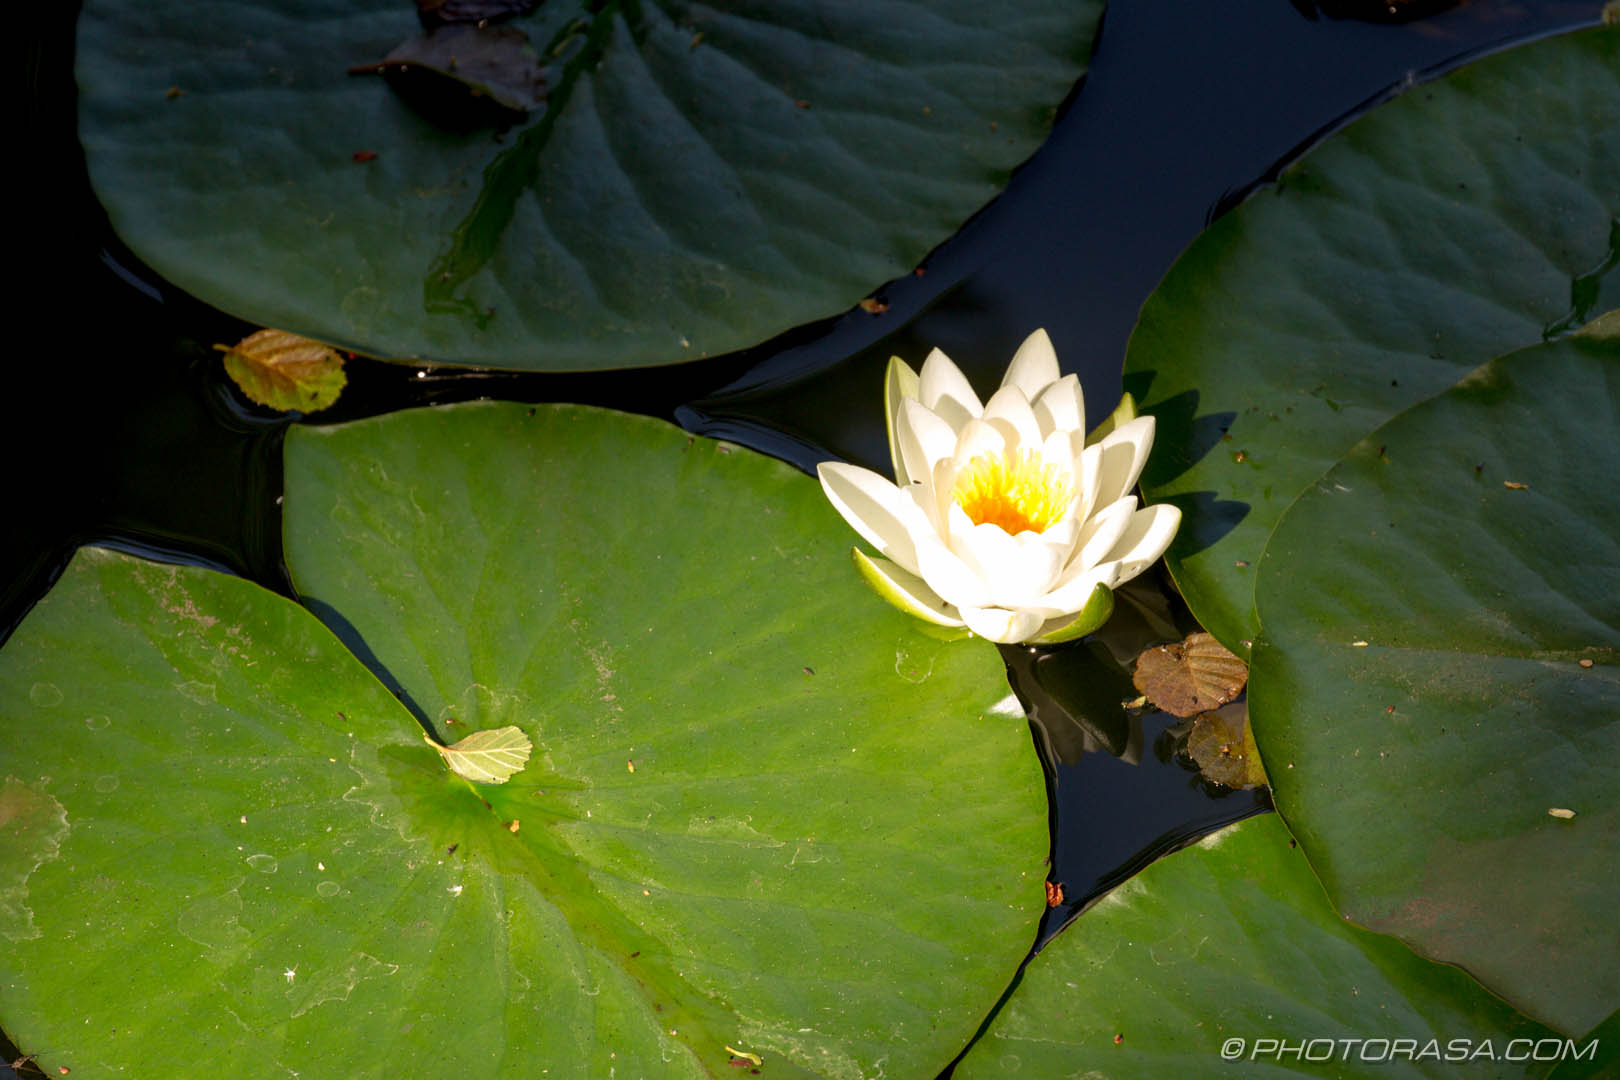 http://photorasa.com/chiddingstone-castle/lily-and-lilypads/